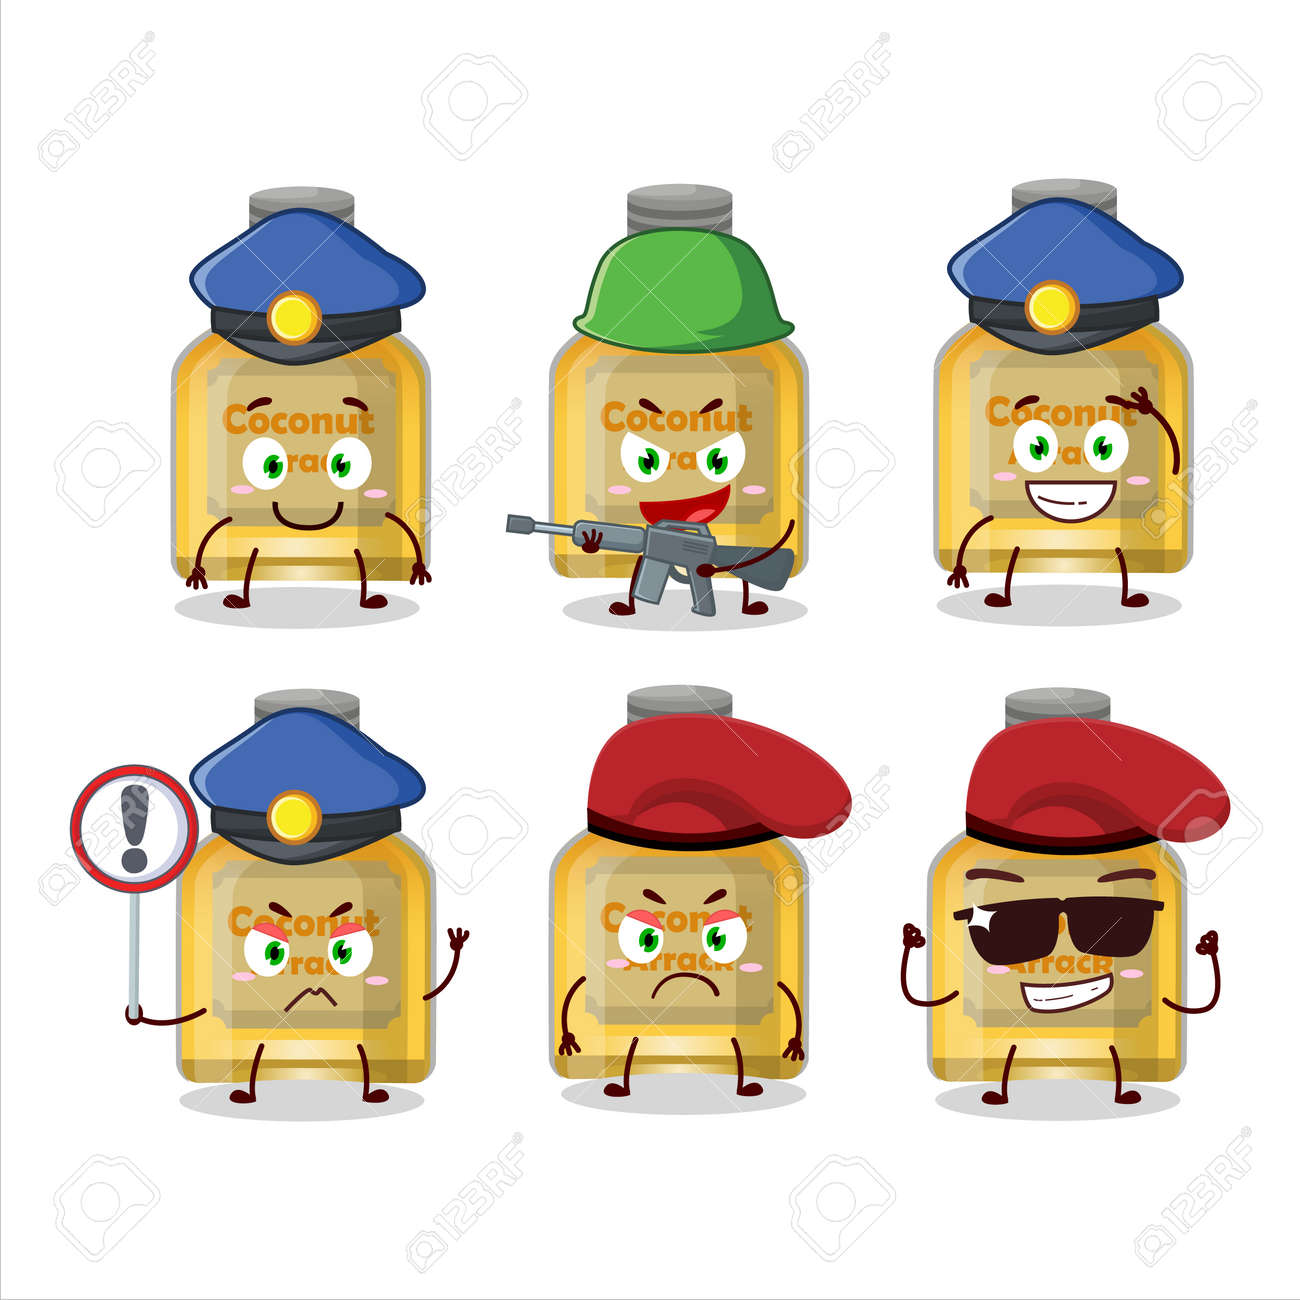 A dedicated Police officer of coconut arrack mascot design style - 173228600